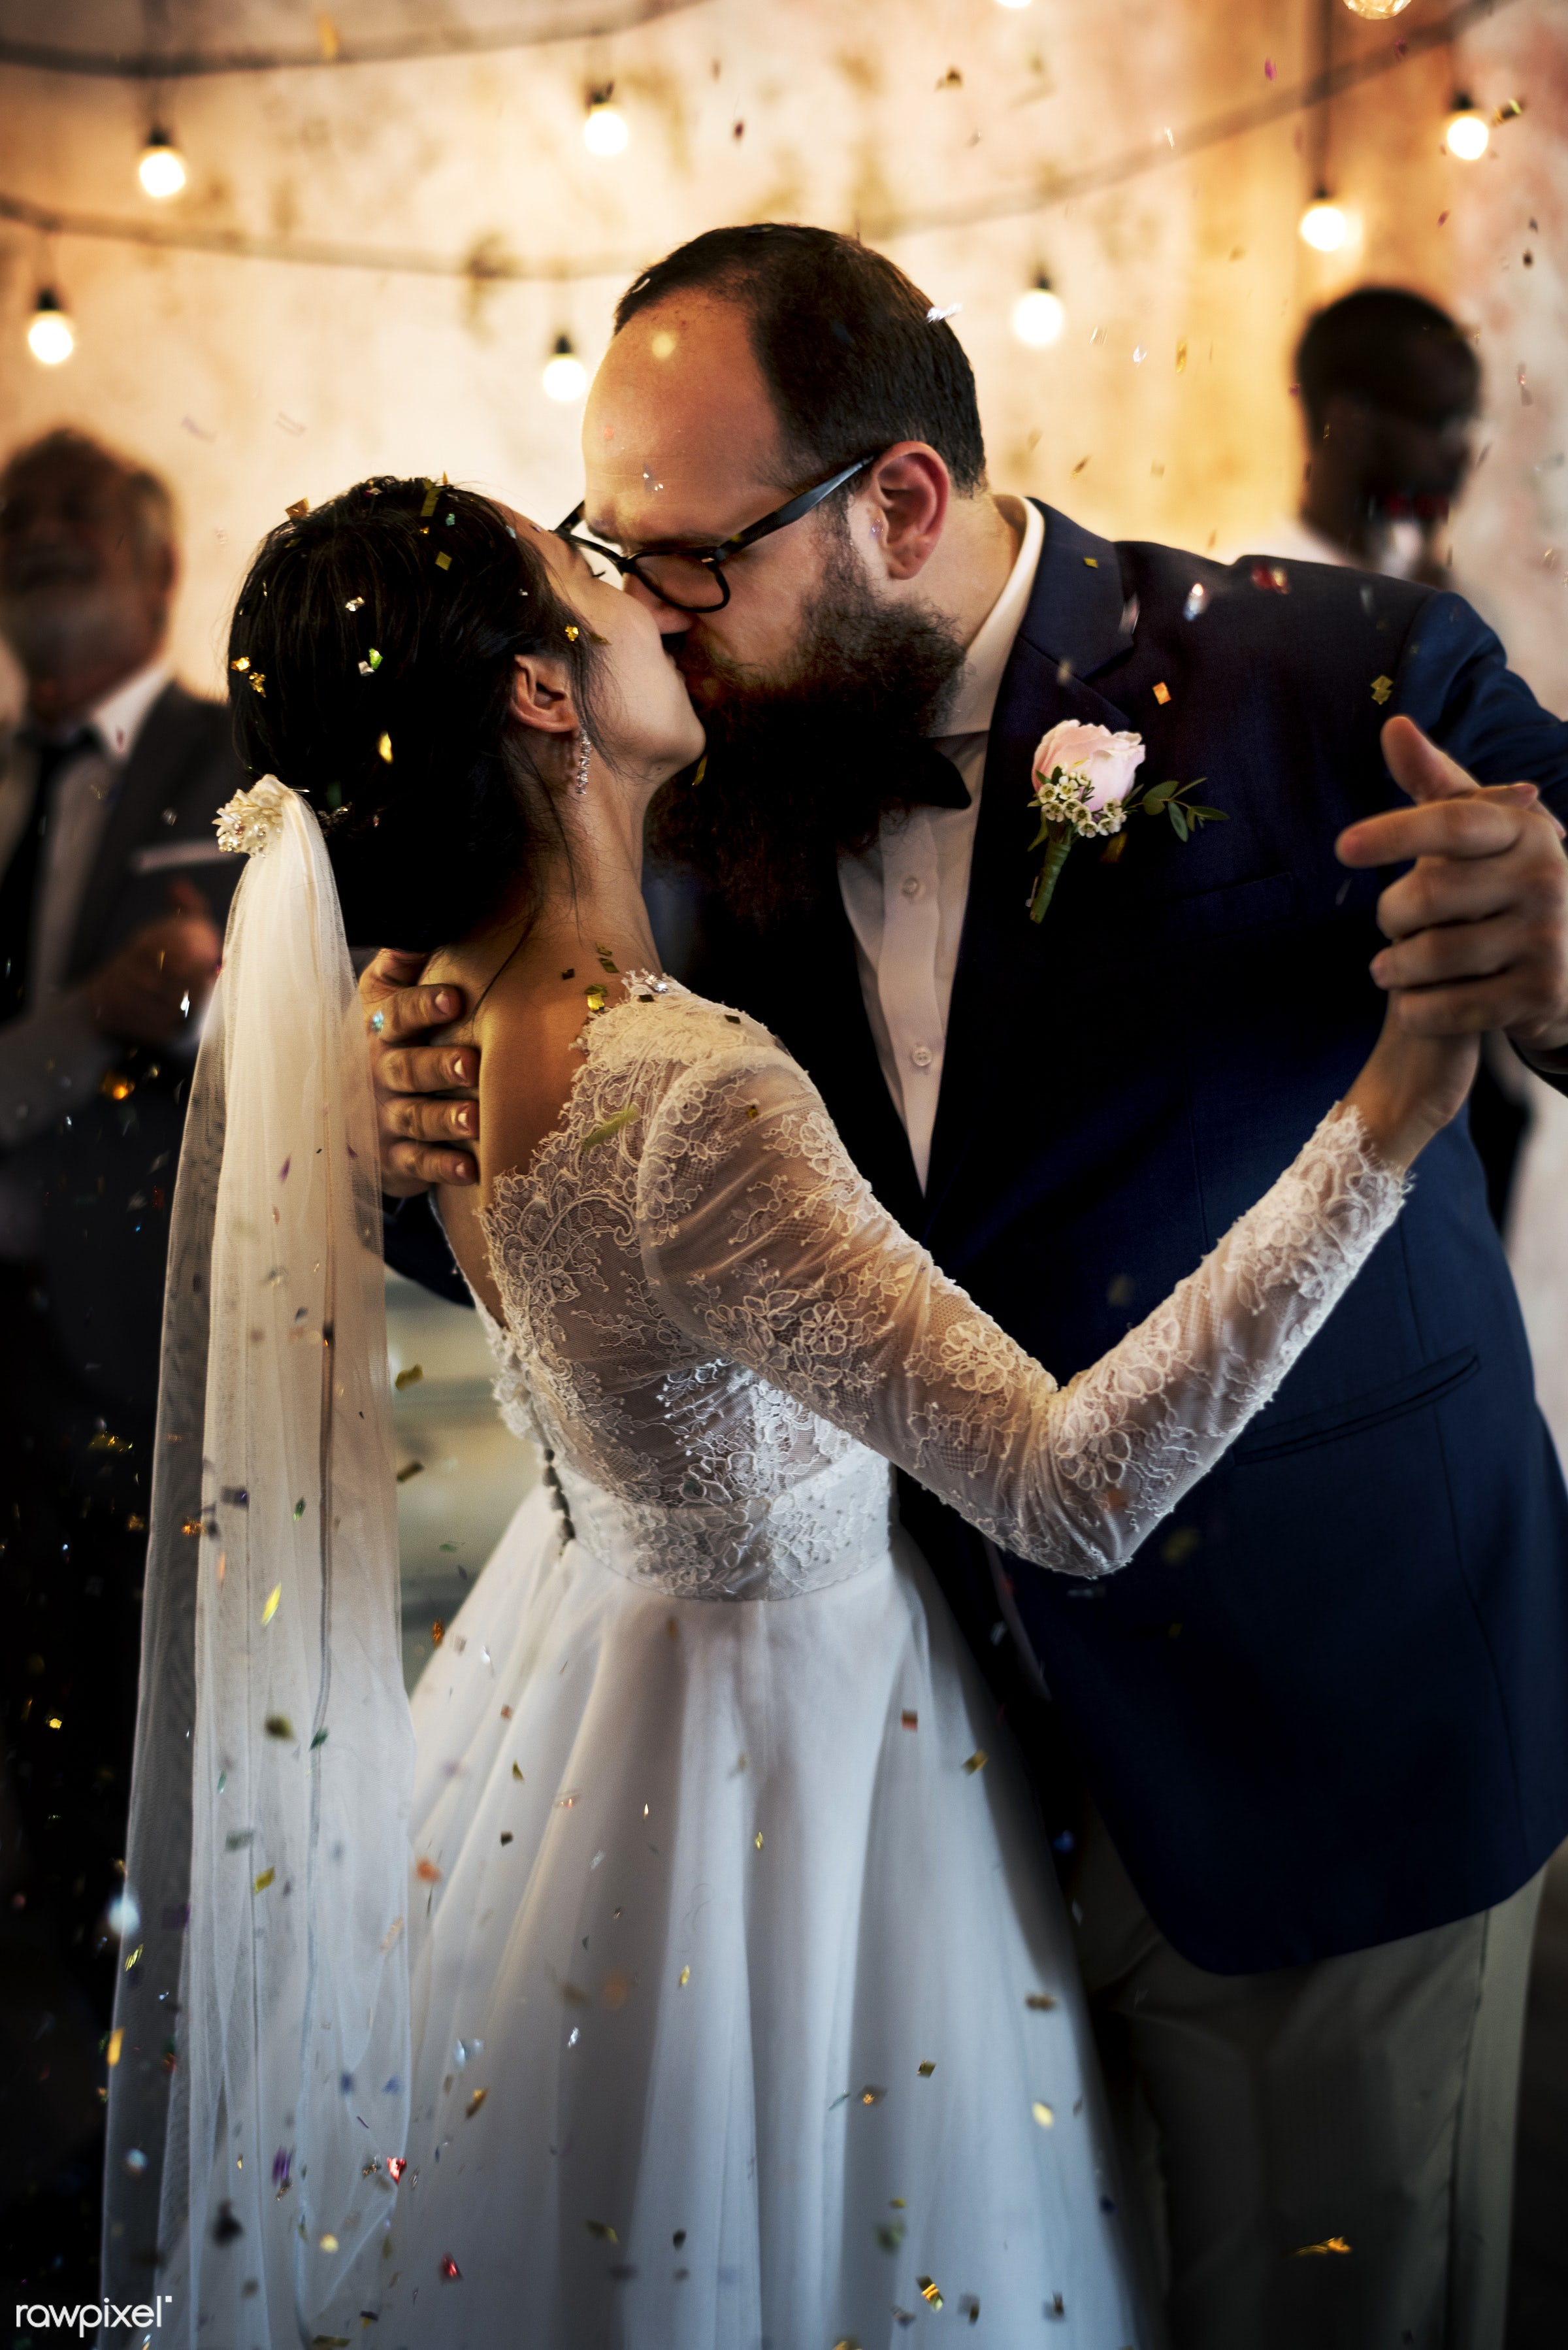 holding, occasion, asian bride, people, together, love, married, gala, hands, spouse, banquet, cheerful, closeup, kissing,...